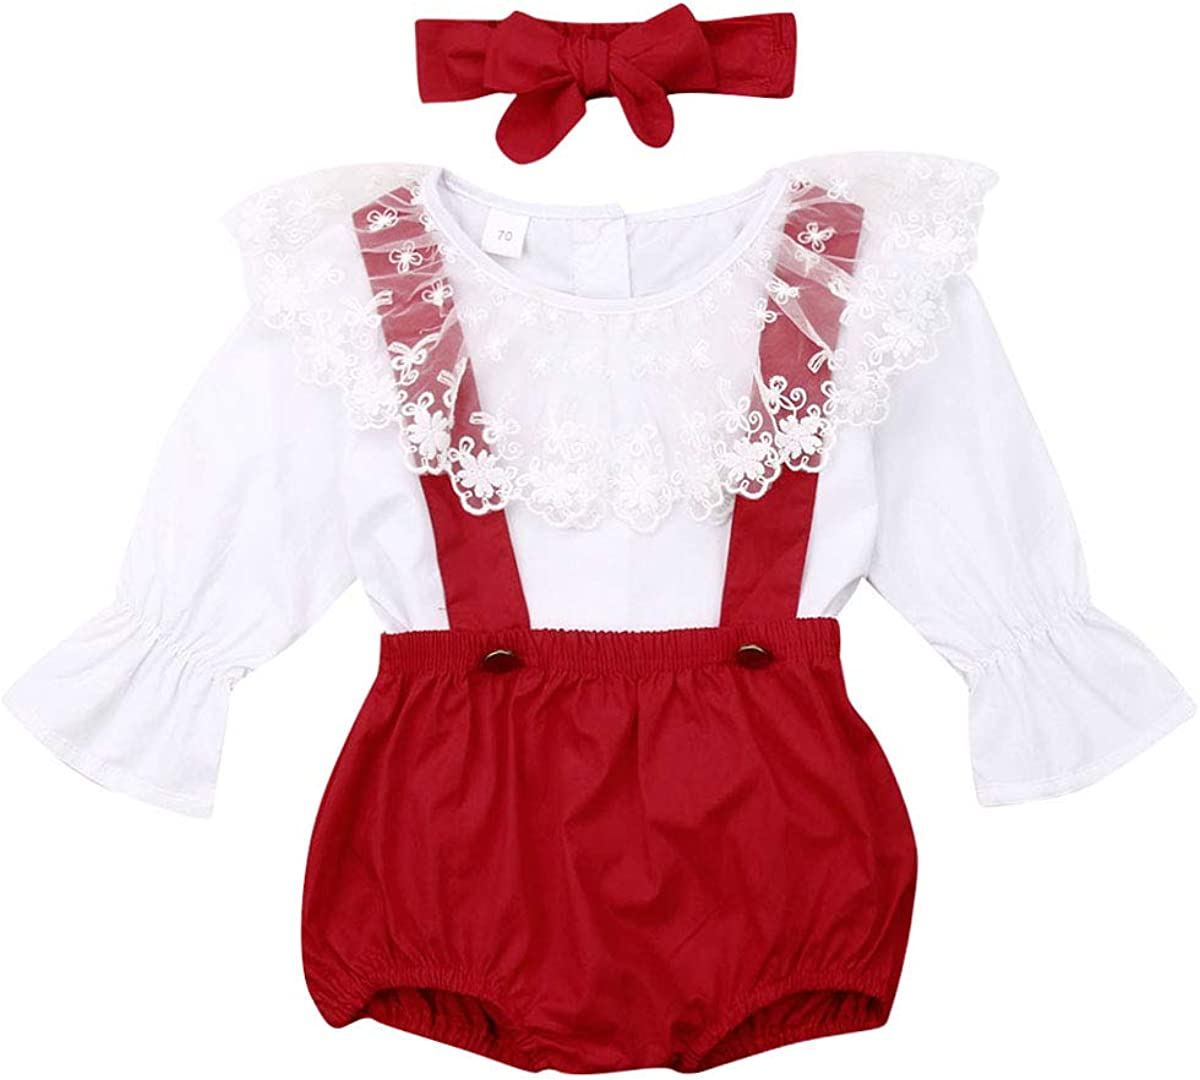 Idgreatim Toddler Girls Outfits/3PCS Long Sleeve Ruffle Top+Floral Suspender Skirt with Headband Fall Winter Clothes 12M-5T